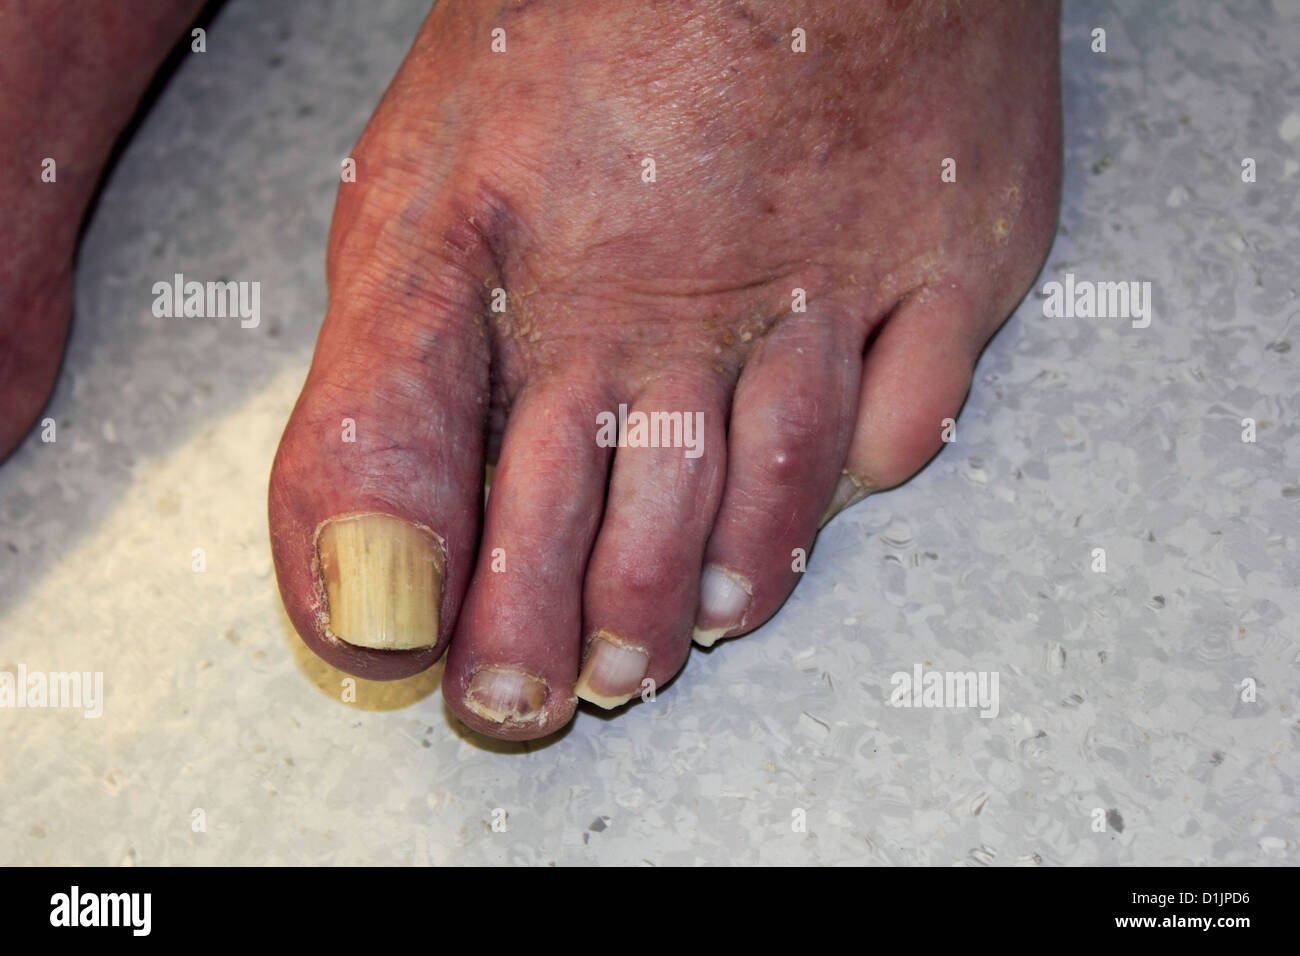 Foot And Toes On An 88 Year Old Elderly Man Showing Fungus On Toe